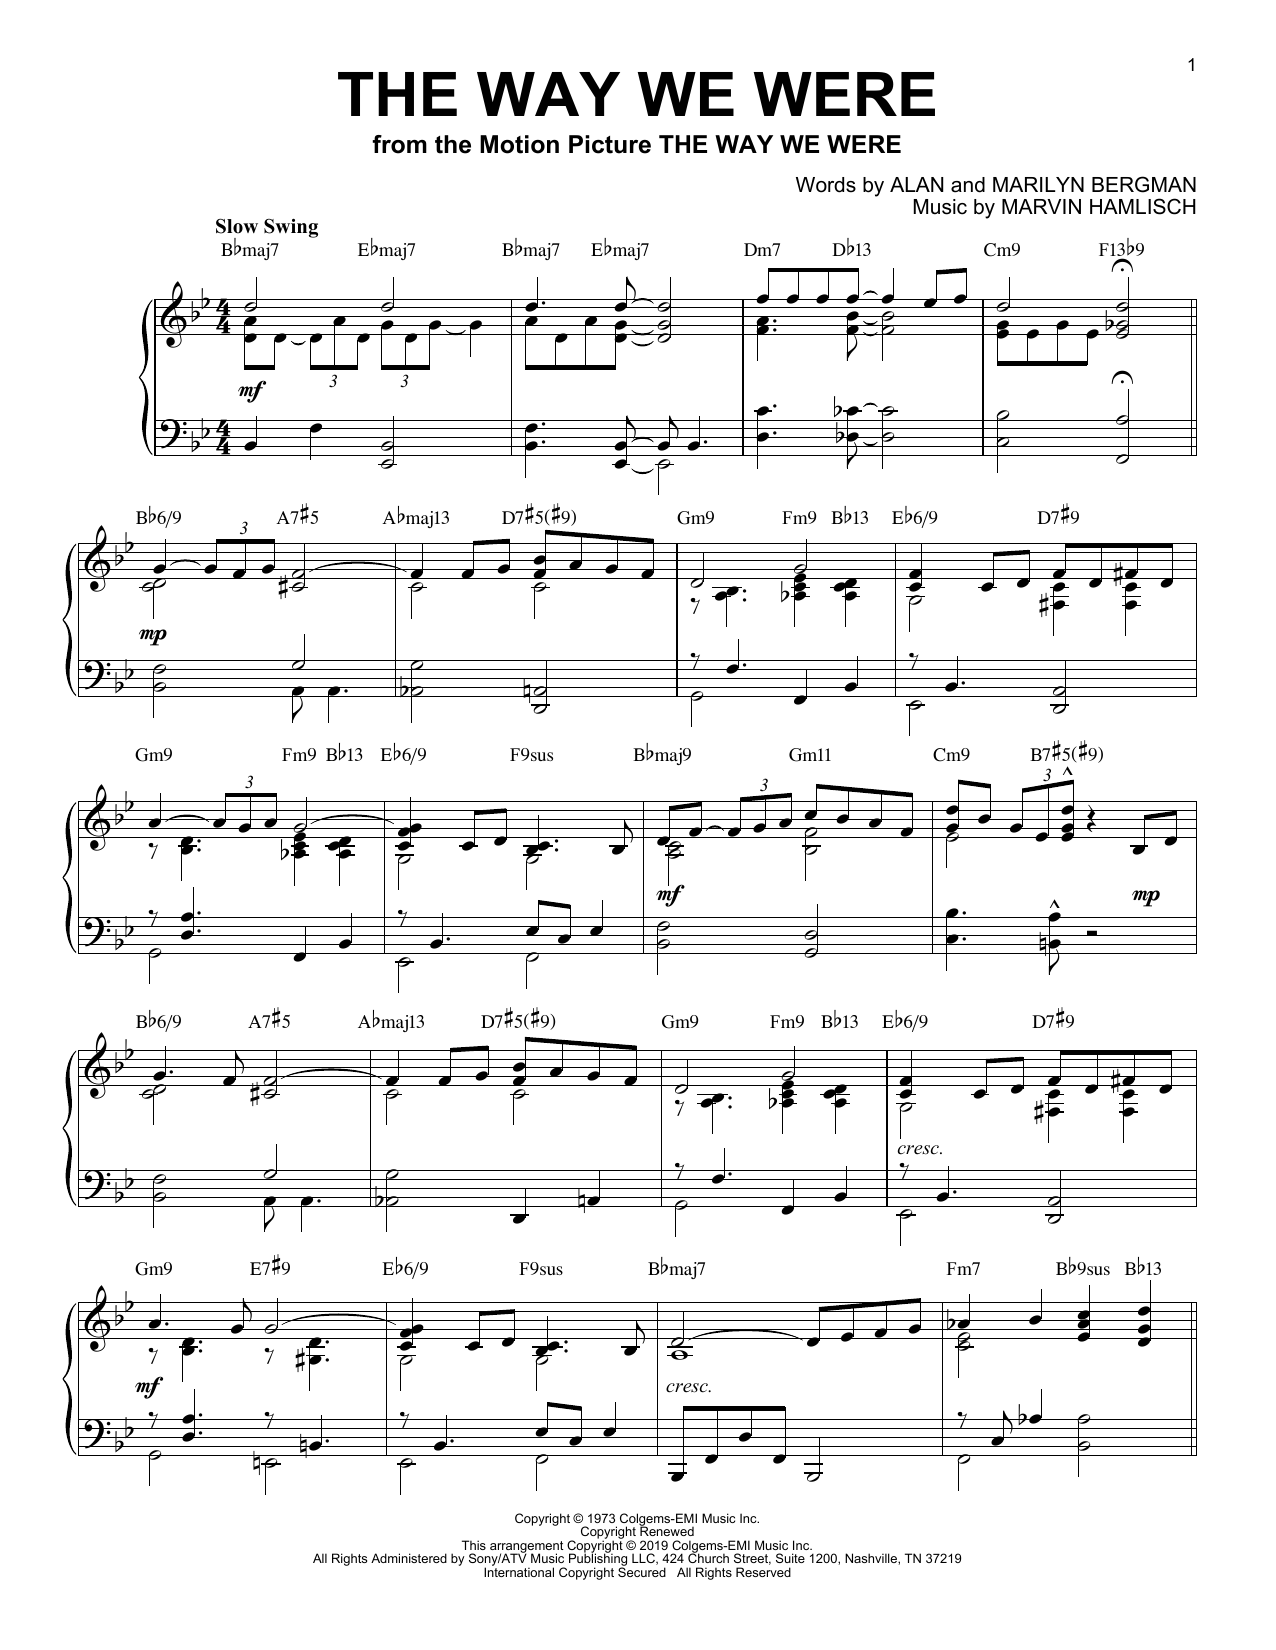 Barbra Streisand The Way We Were [Jazz version] sheet music notes and chords. Download Printable PDF.